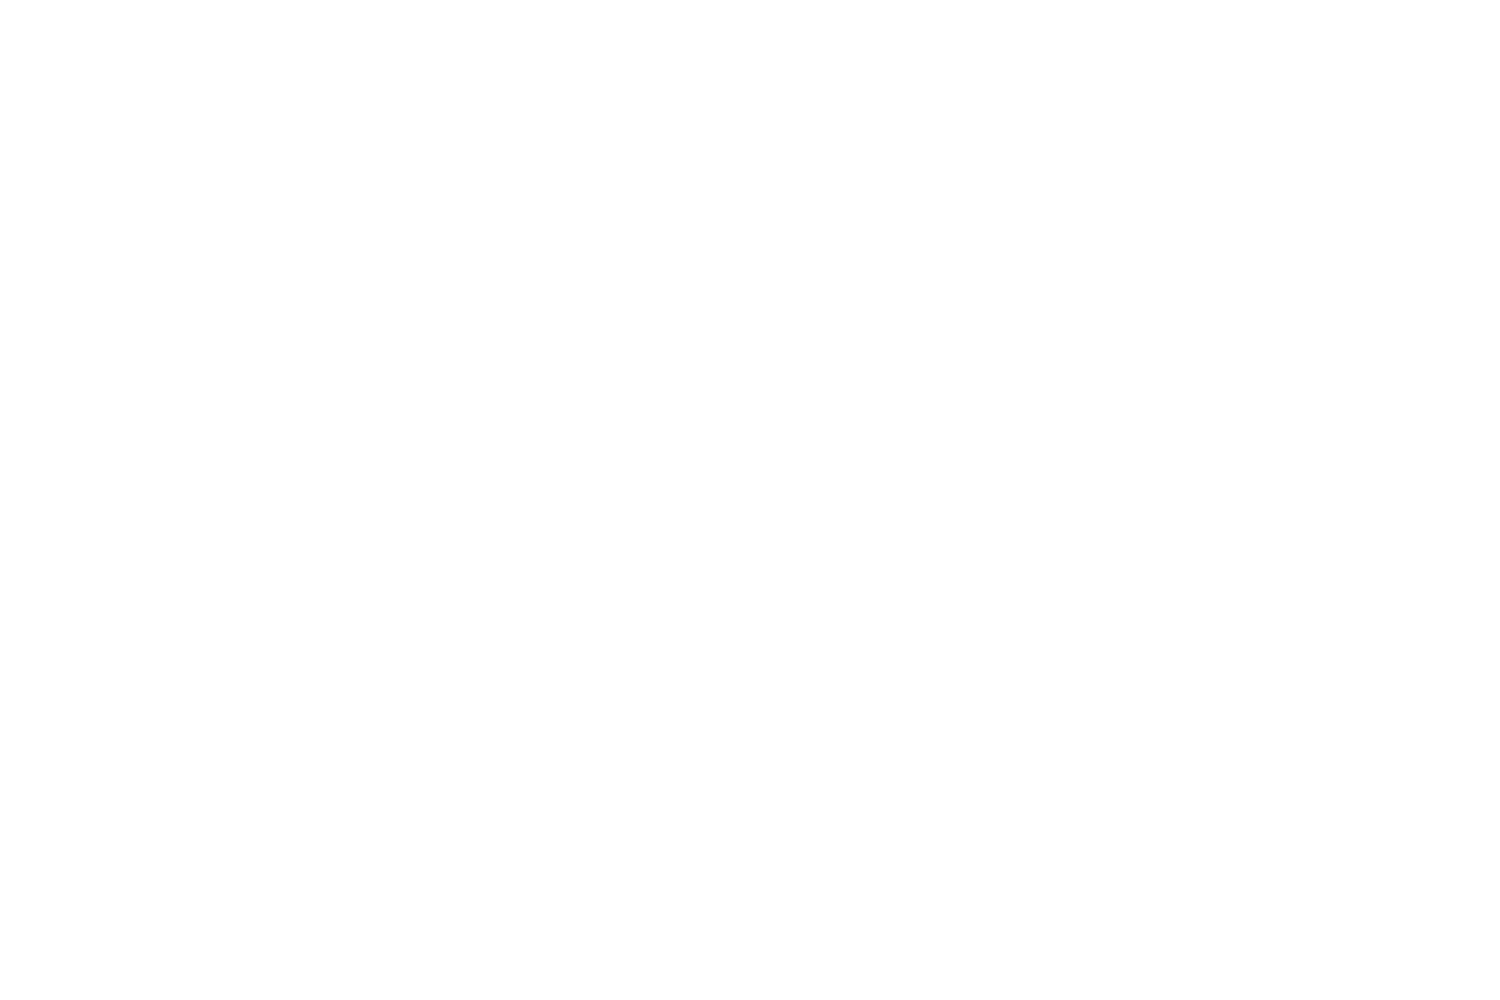 Mr. Luxury Ski